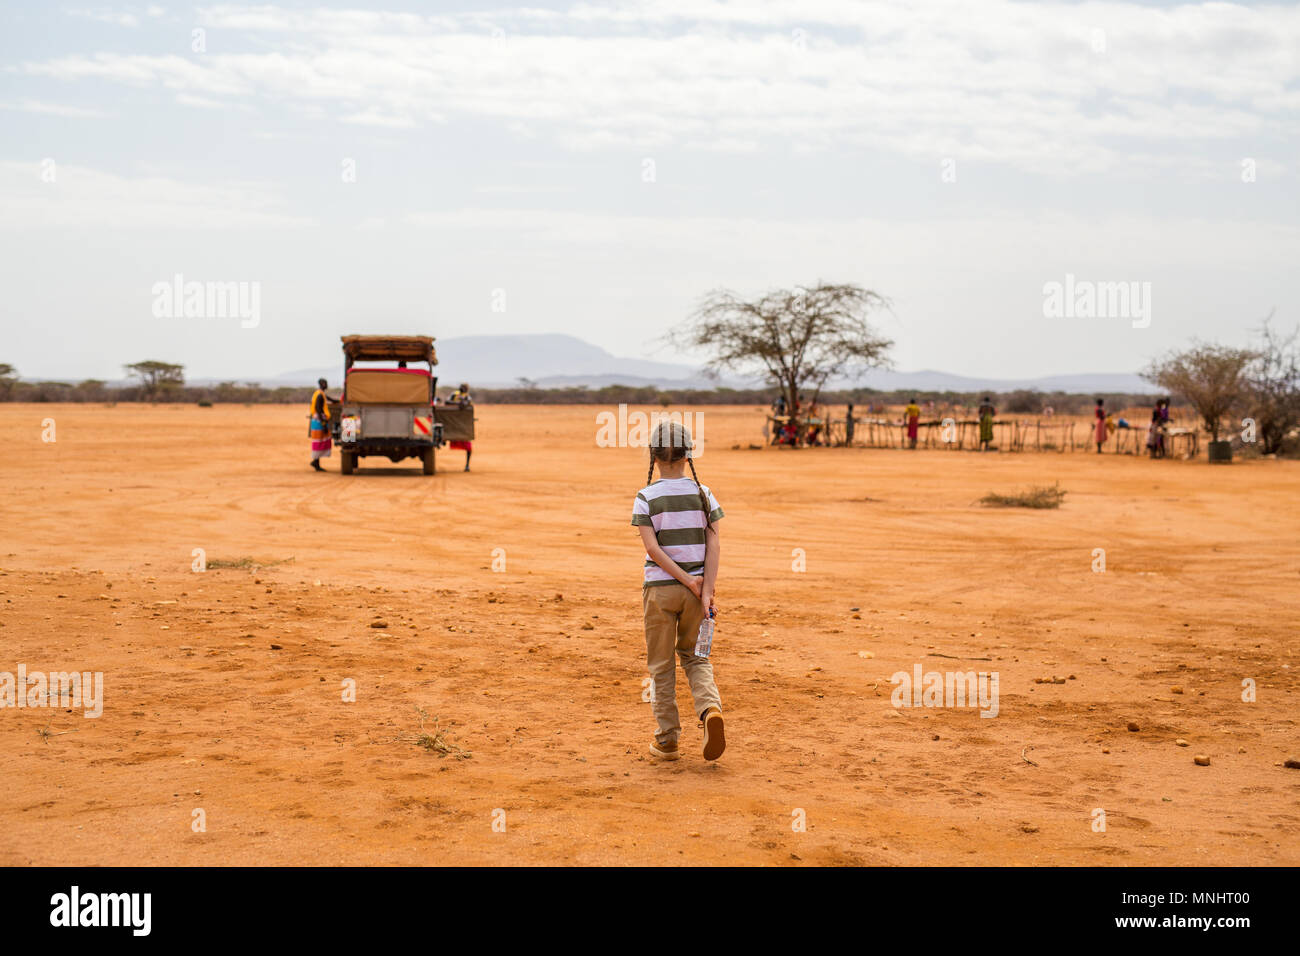 Adorable little girl in Kenya safari walking towards open vehicle - Stock Image